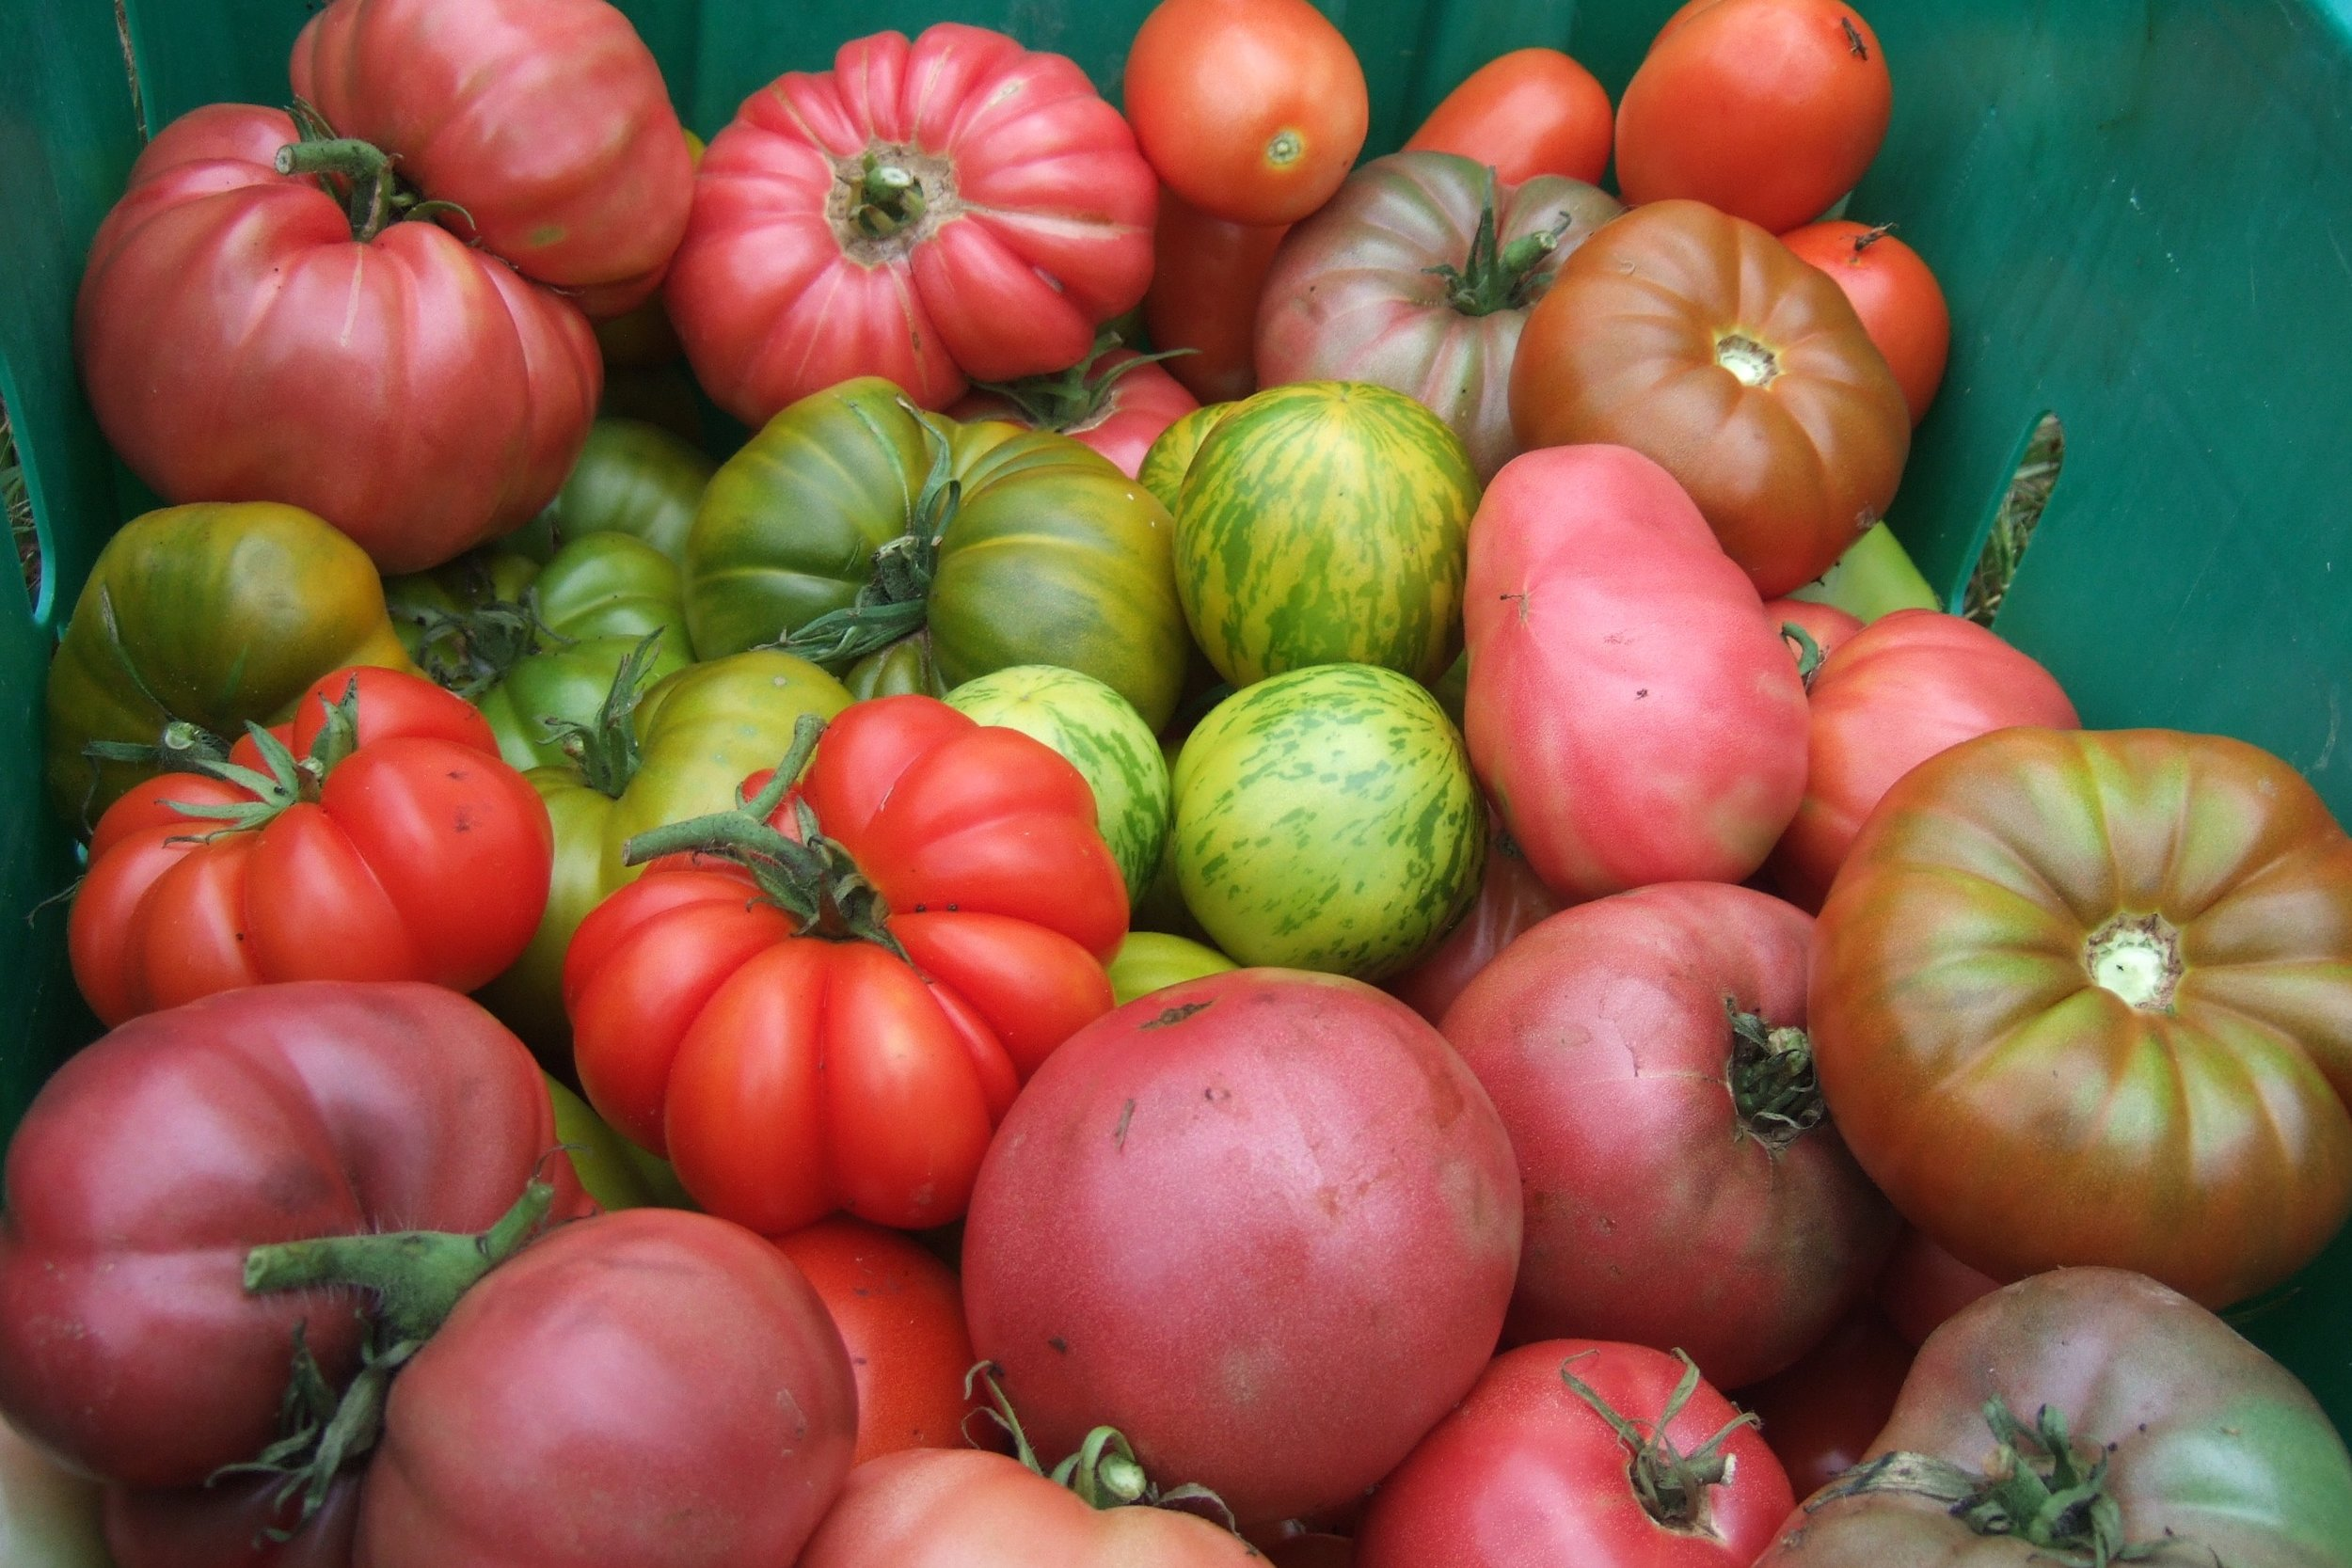 Heirloom vegetables often have unique colors, flavors, and shapes.